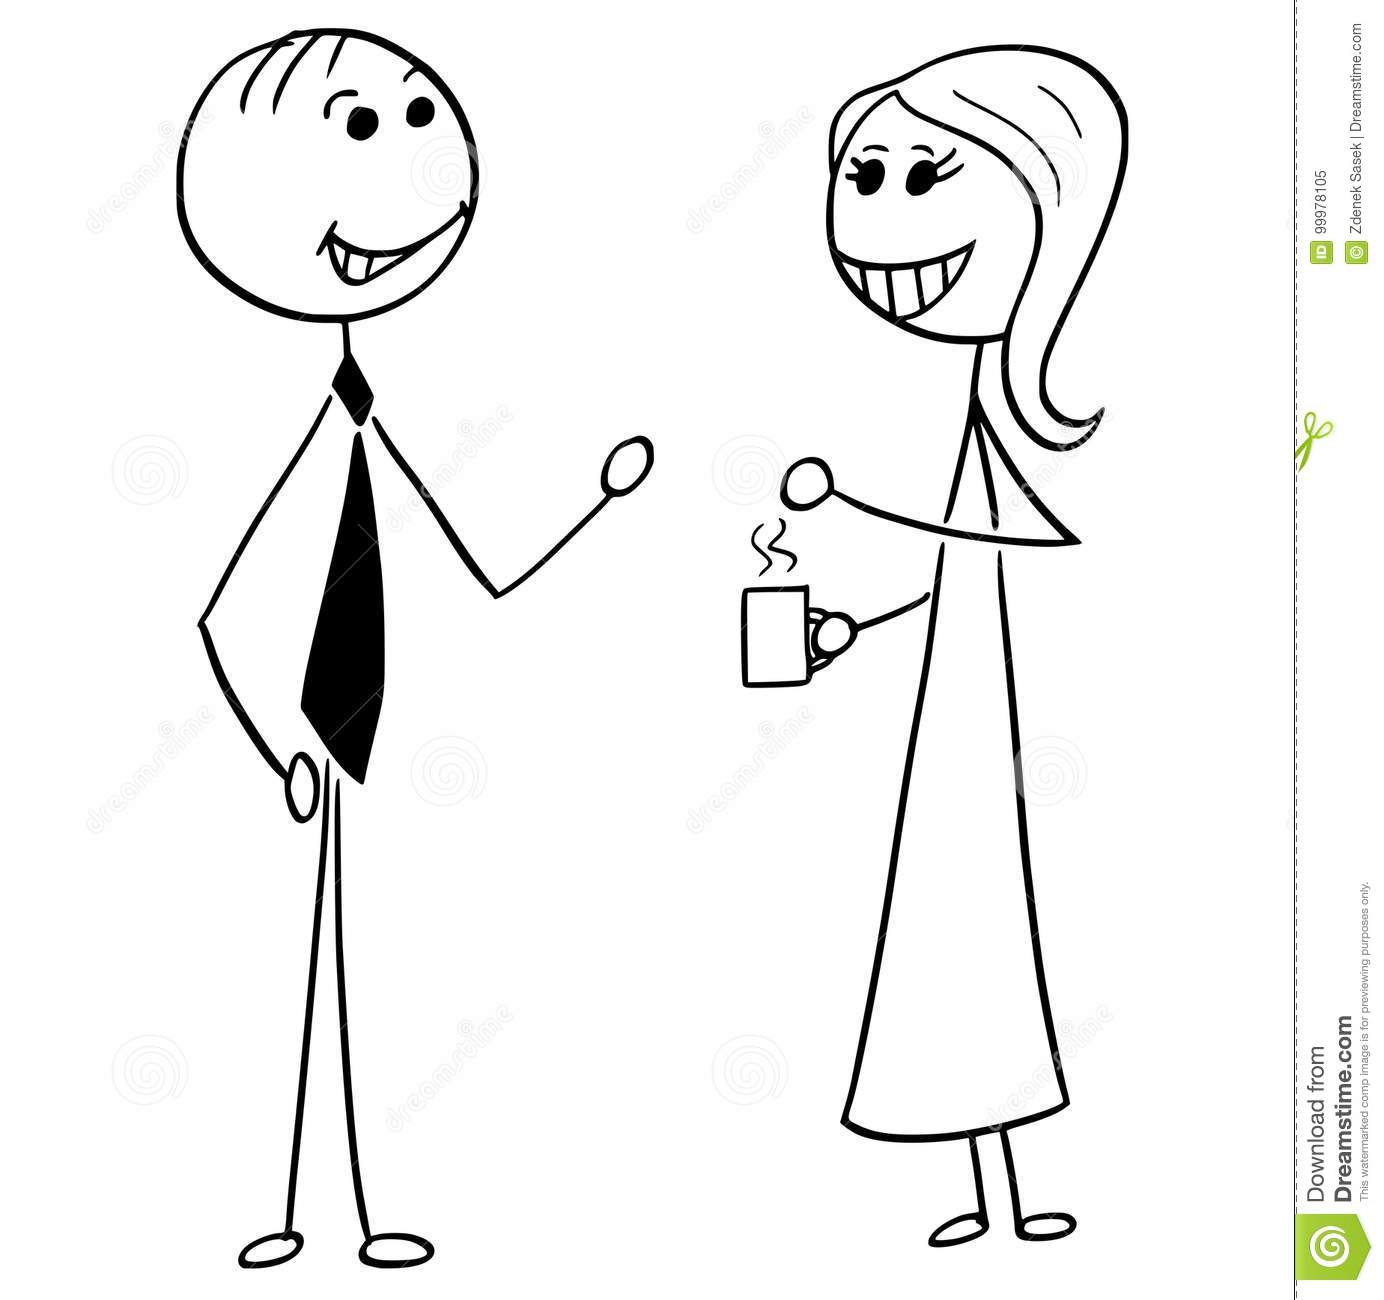 Cartoon Illustration Of Man And Woman Business People